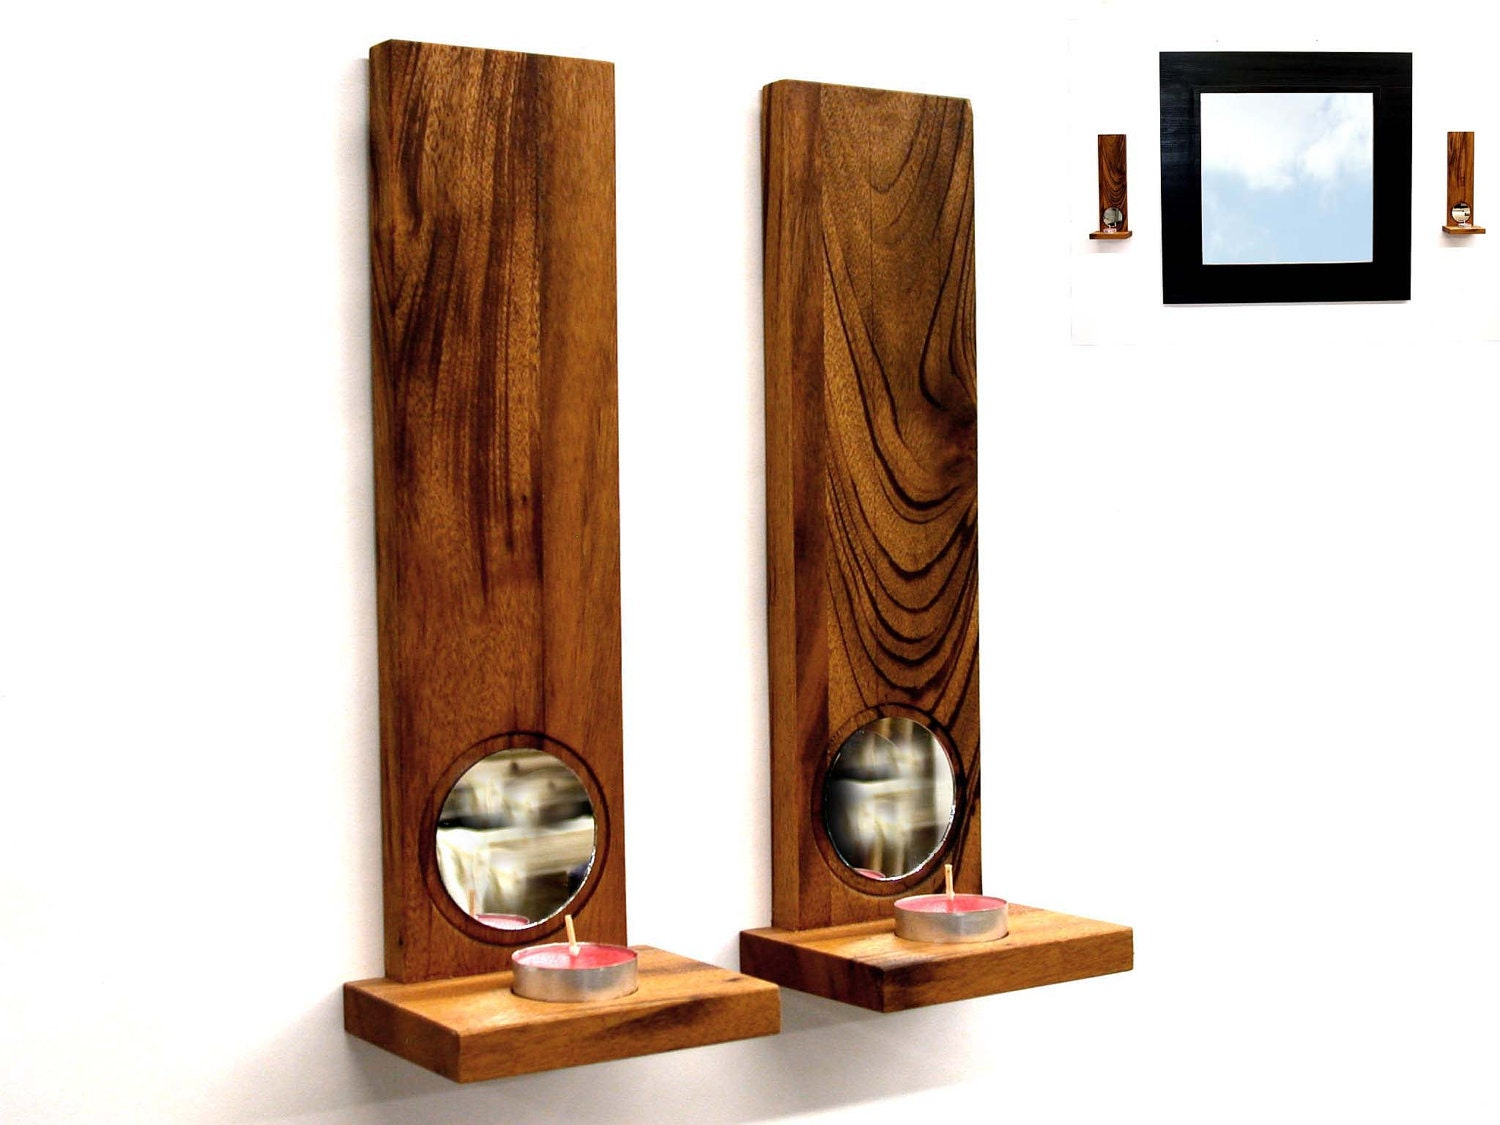 Wall Sconces Decor Ideas : Items similar to Wall sconces candle holder Art wall decor Tiger wood - duo candle holder tea ...